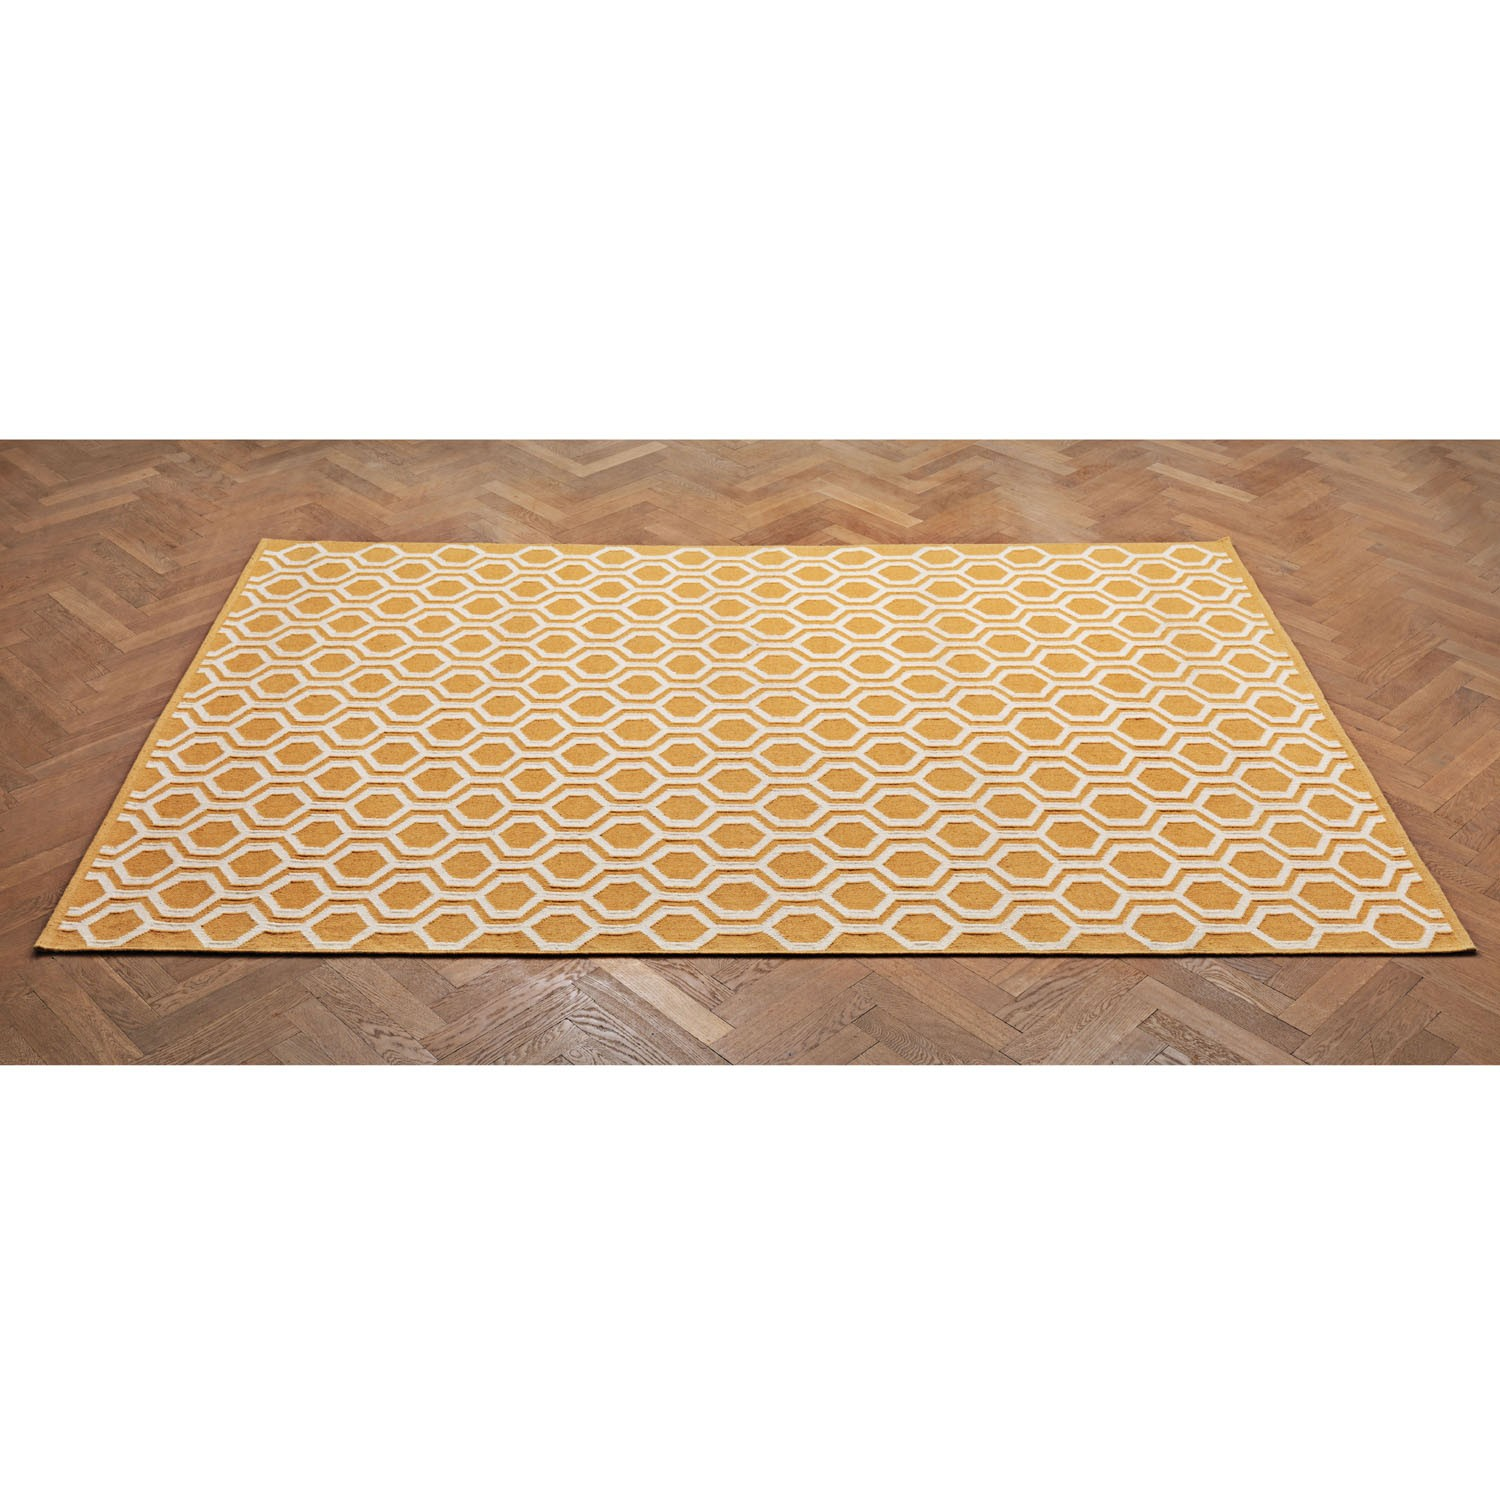 perth design of in floor cheap trendy innovative rug ideas luxury modern rugs unique